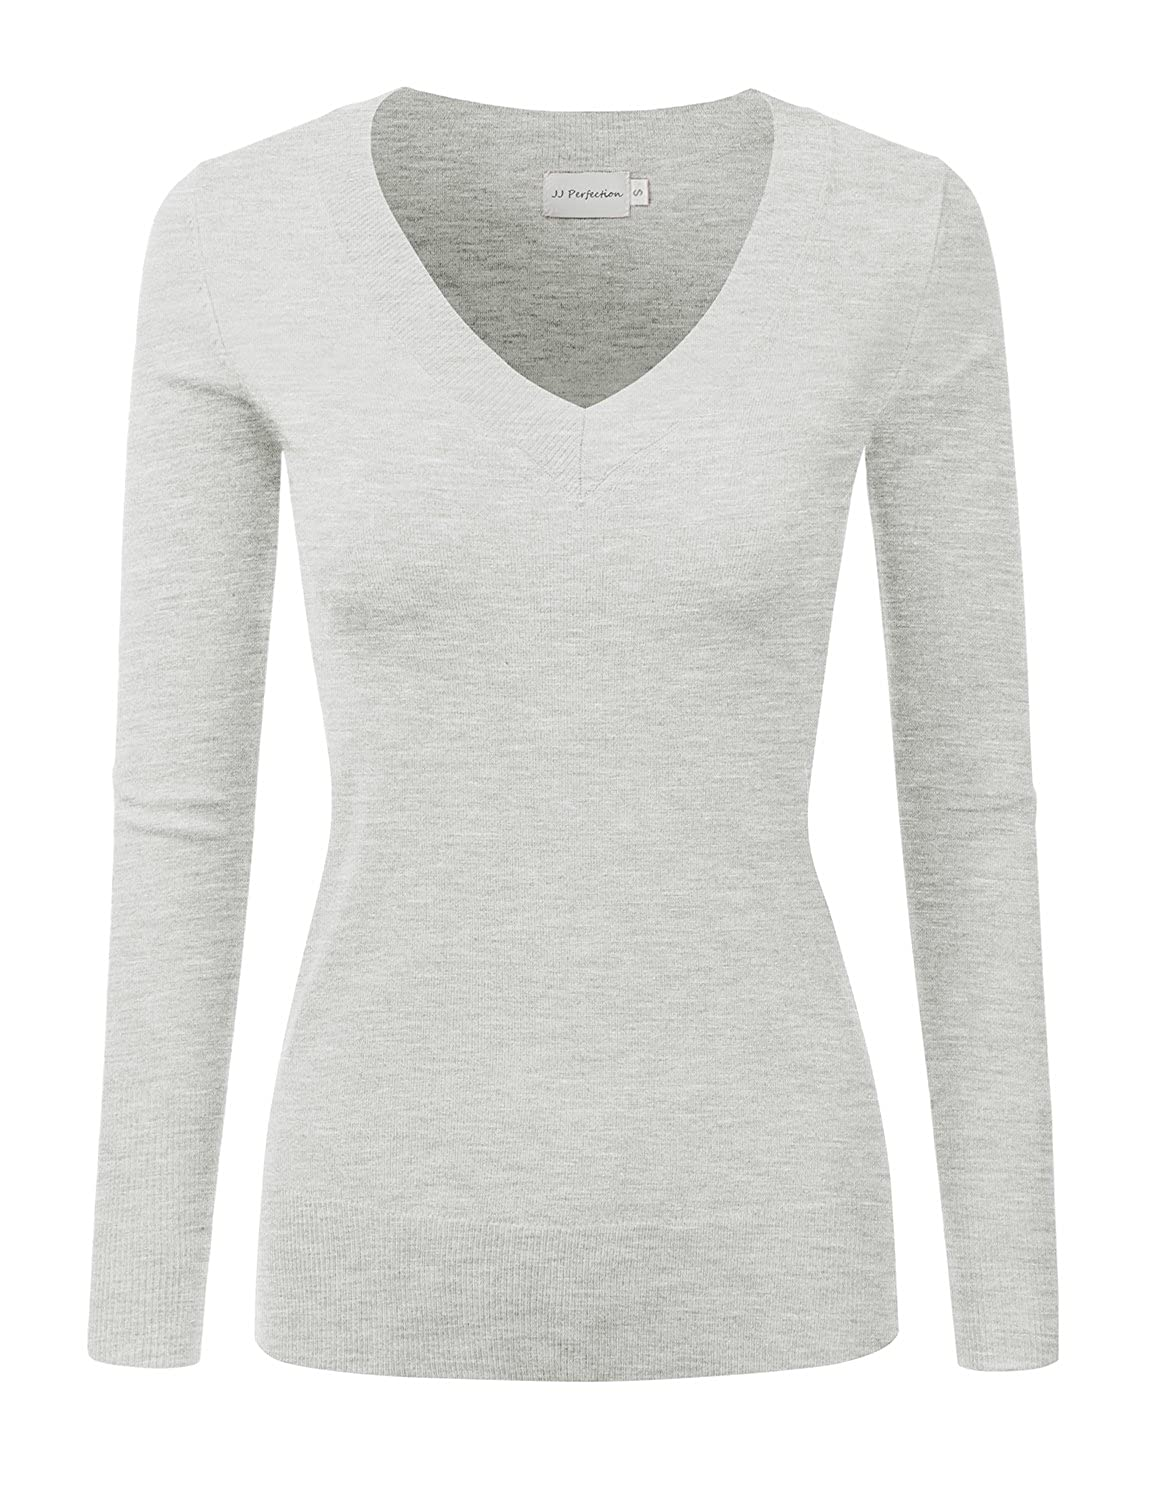 Machine Wash Warm   Do Not Bleach   Tumble Dry Low Women s basic casual  long sleeve sweater top. Features thick v-neck collar and ribbed cuffs hem 18294a3d8